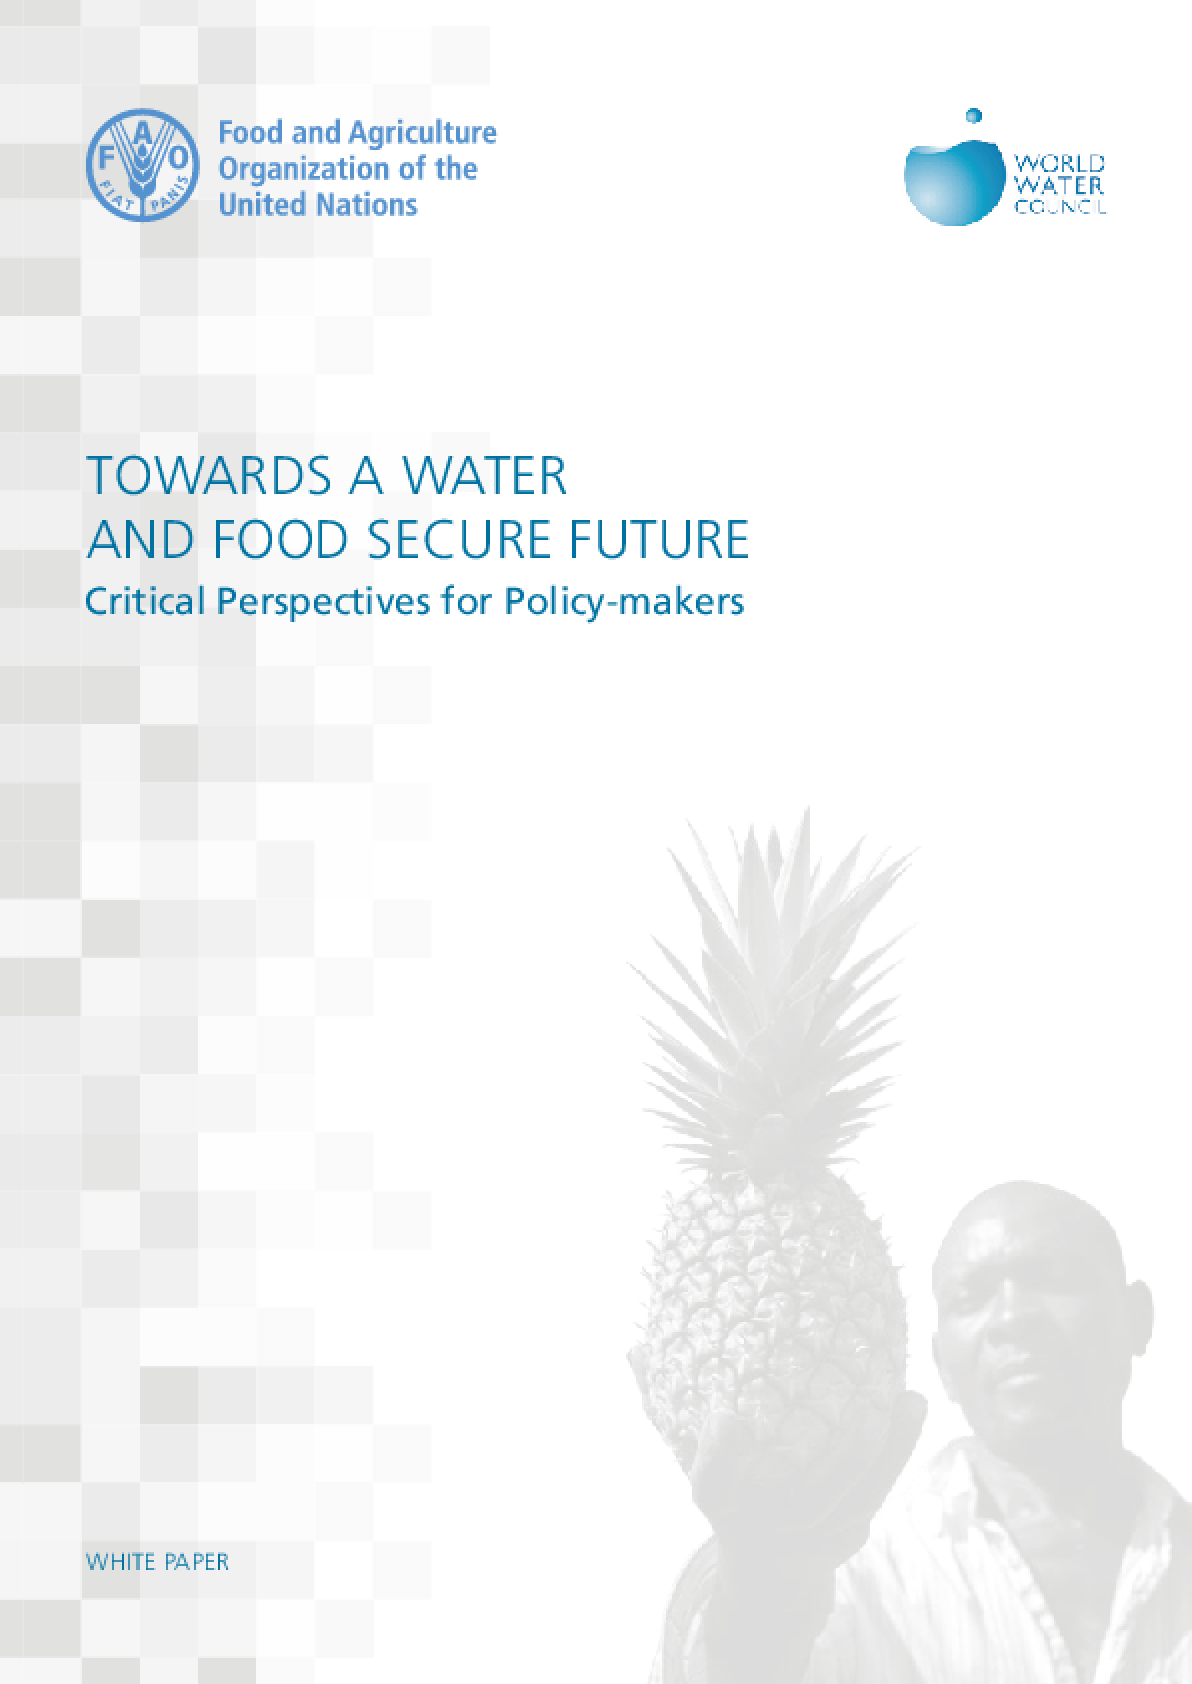 Towards A Water and Food Secure Future: Critical Perspectives for Policy-makers